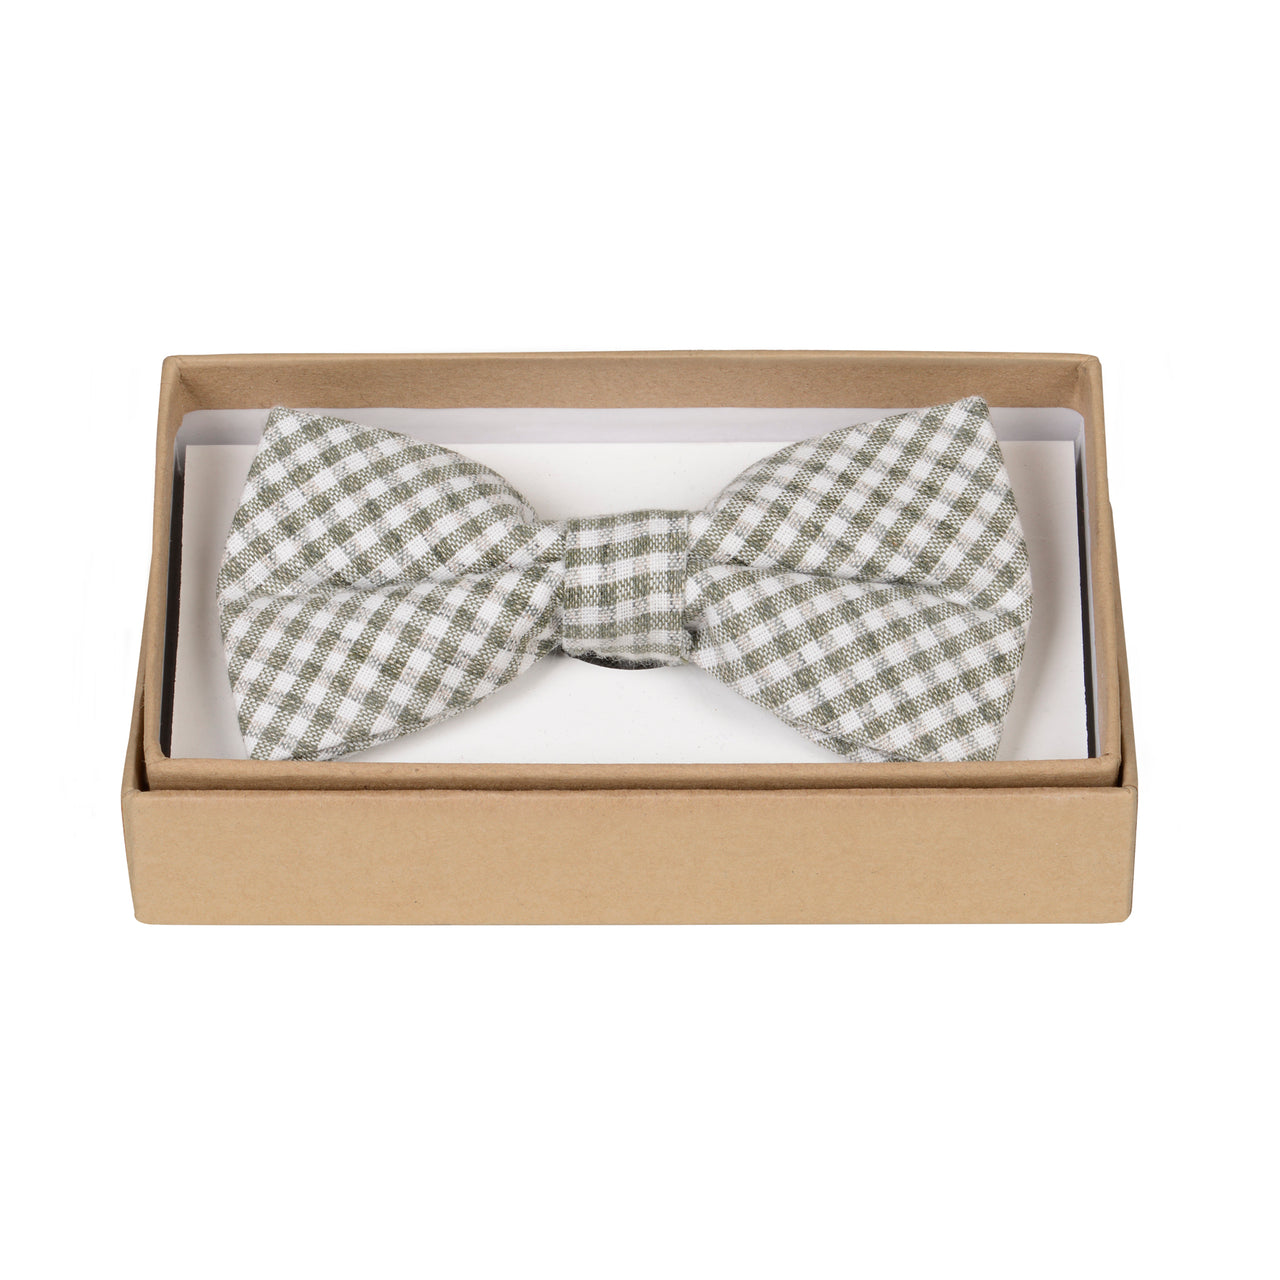 The Olive Check Bow